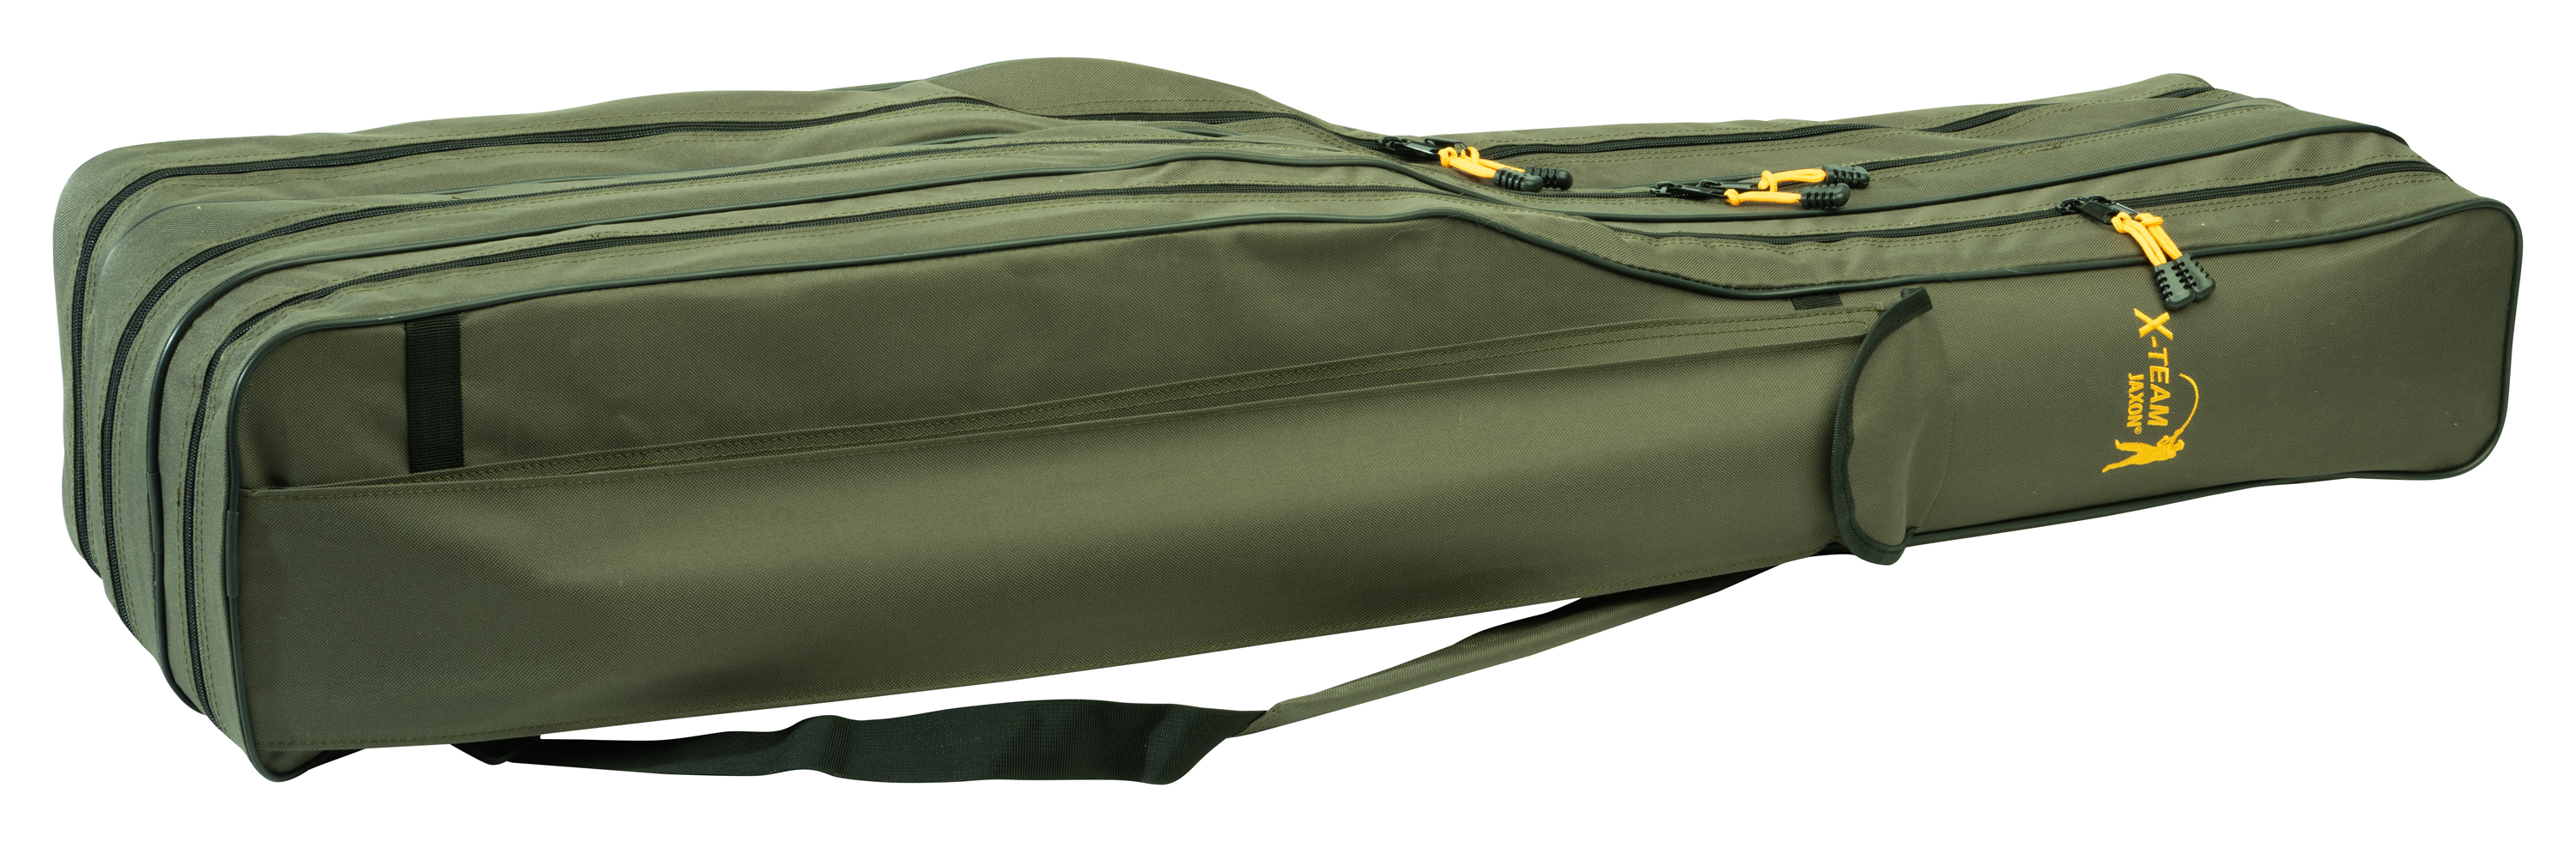 TWO COMPARTMENT HOLDALL 115cm